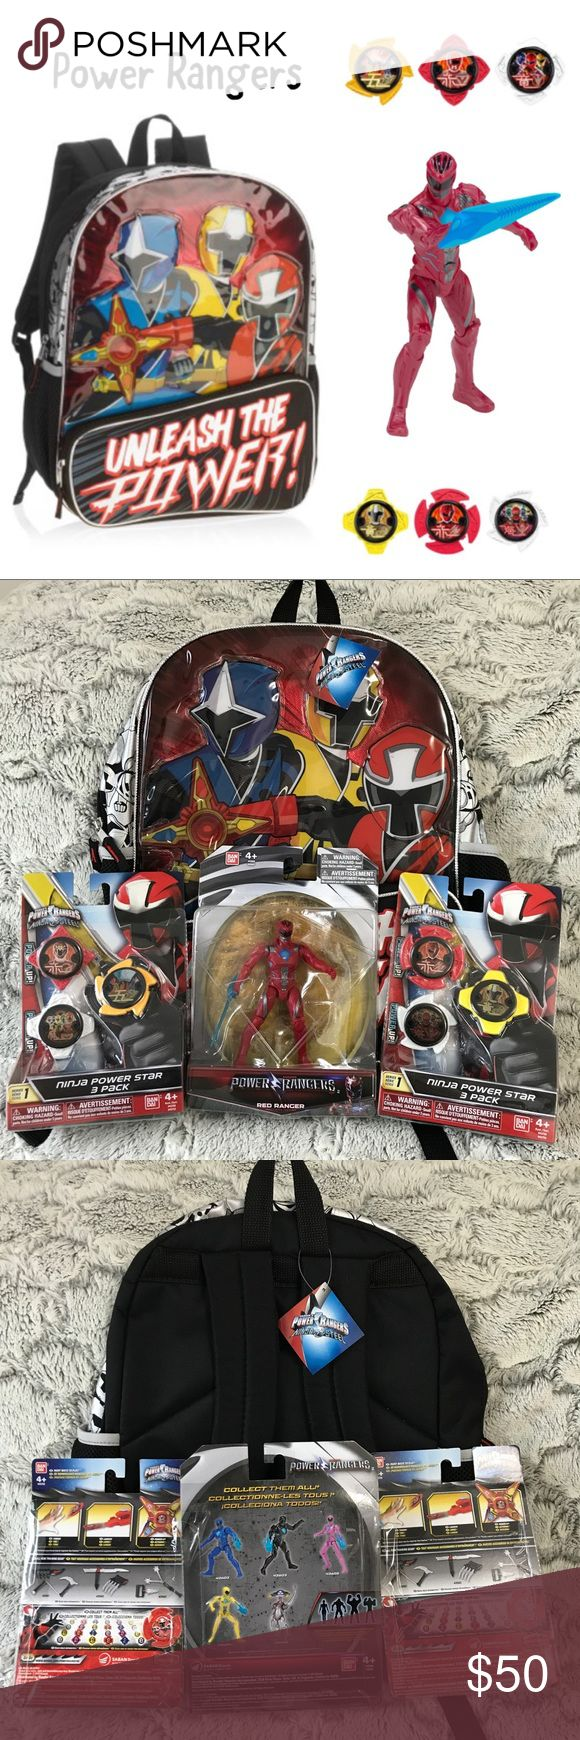 💫NWT🍁fall boys power Rangers gift set🎁 New Boys Power Ranger gift Set includes: 1 Backpack, 1  Red Ranger Action Hero and 2 3packs of Ninja power Star.  Brand new w Tags and in Box.  Priced to sell... do not low ball.  Bundle to save more! Ban Dai Accessories